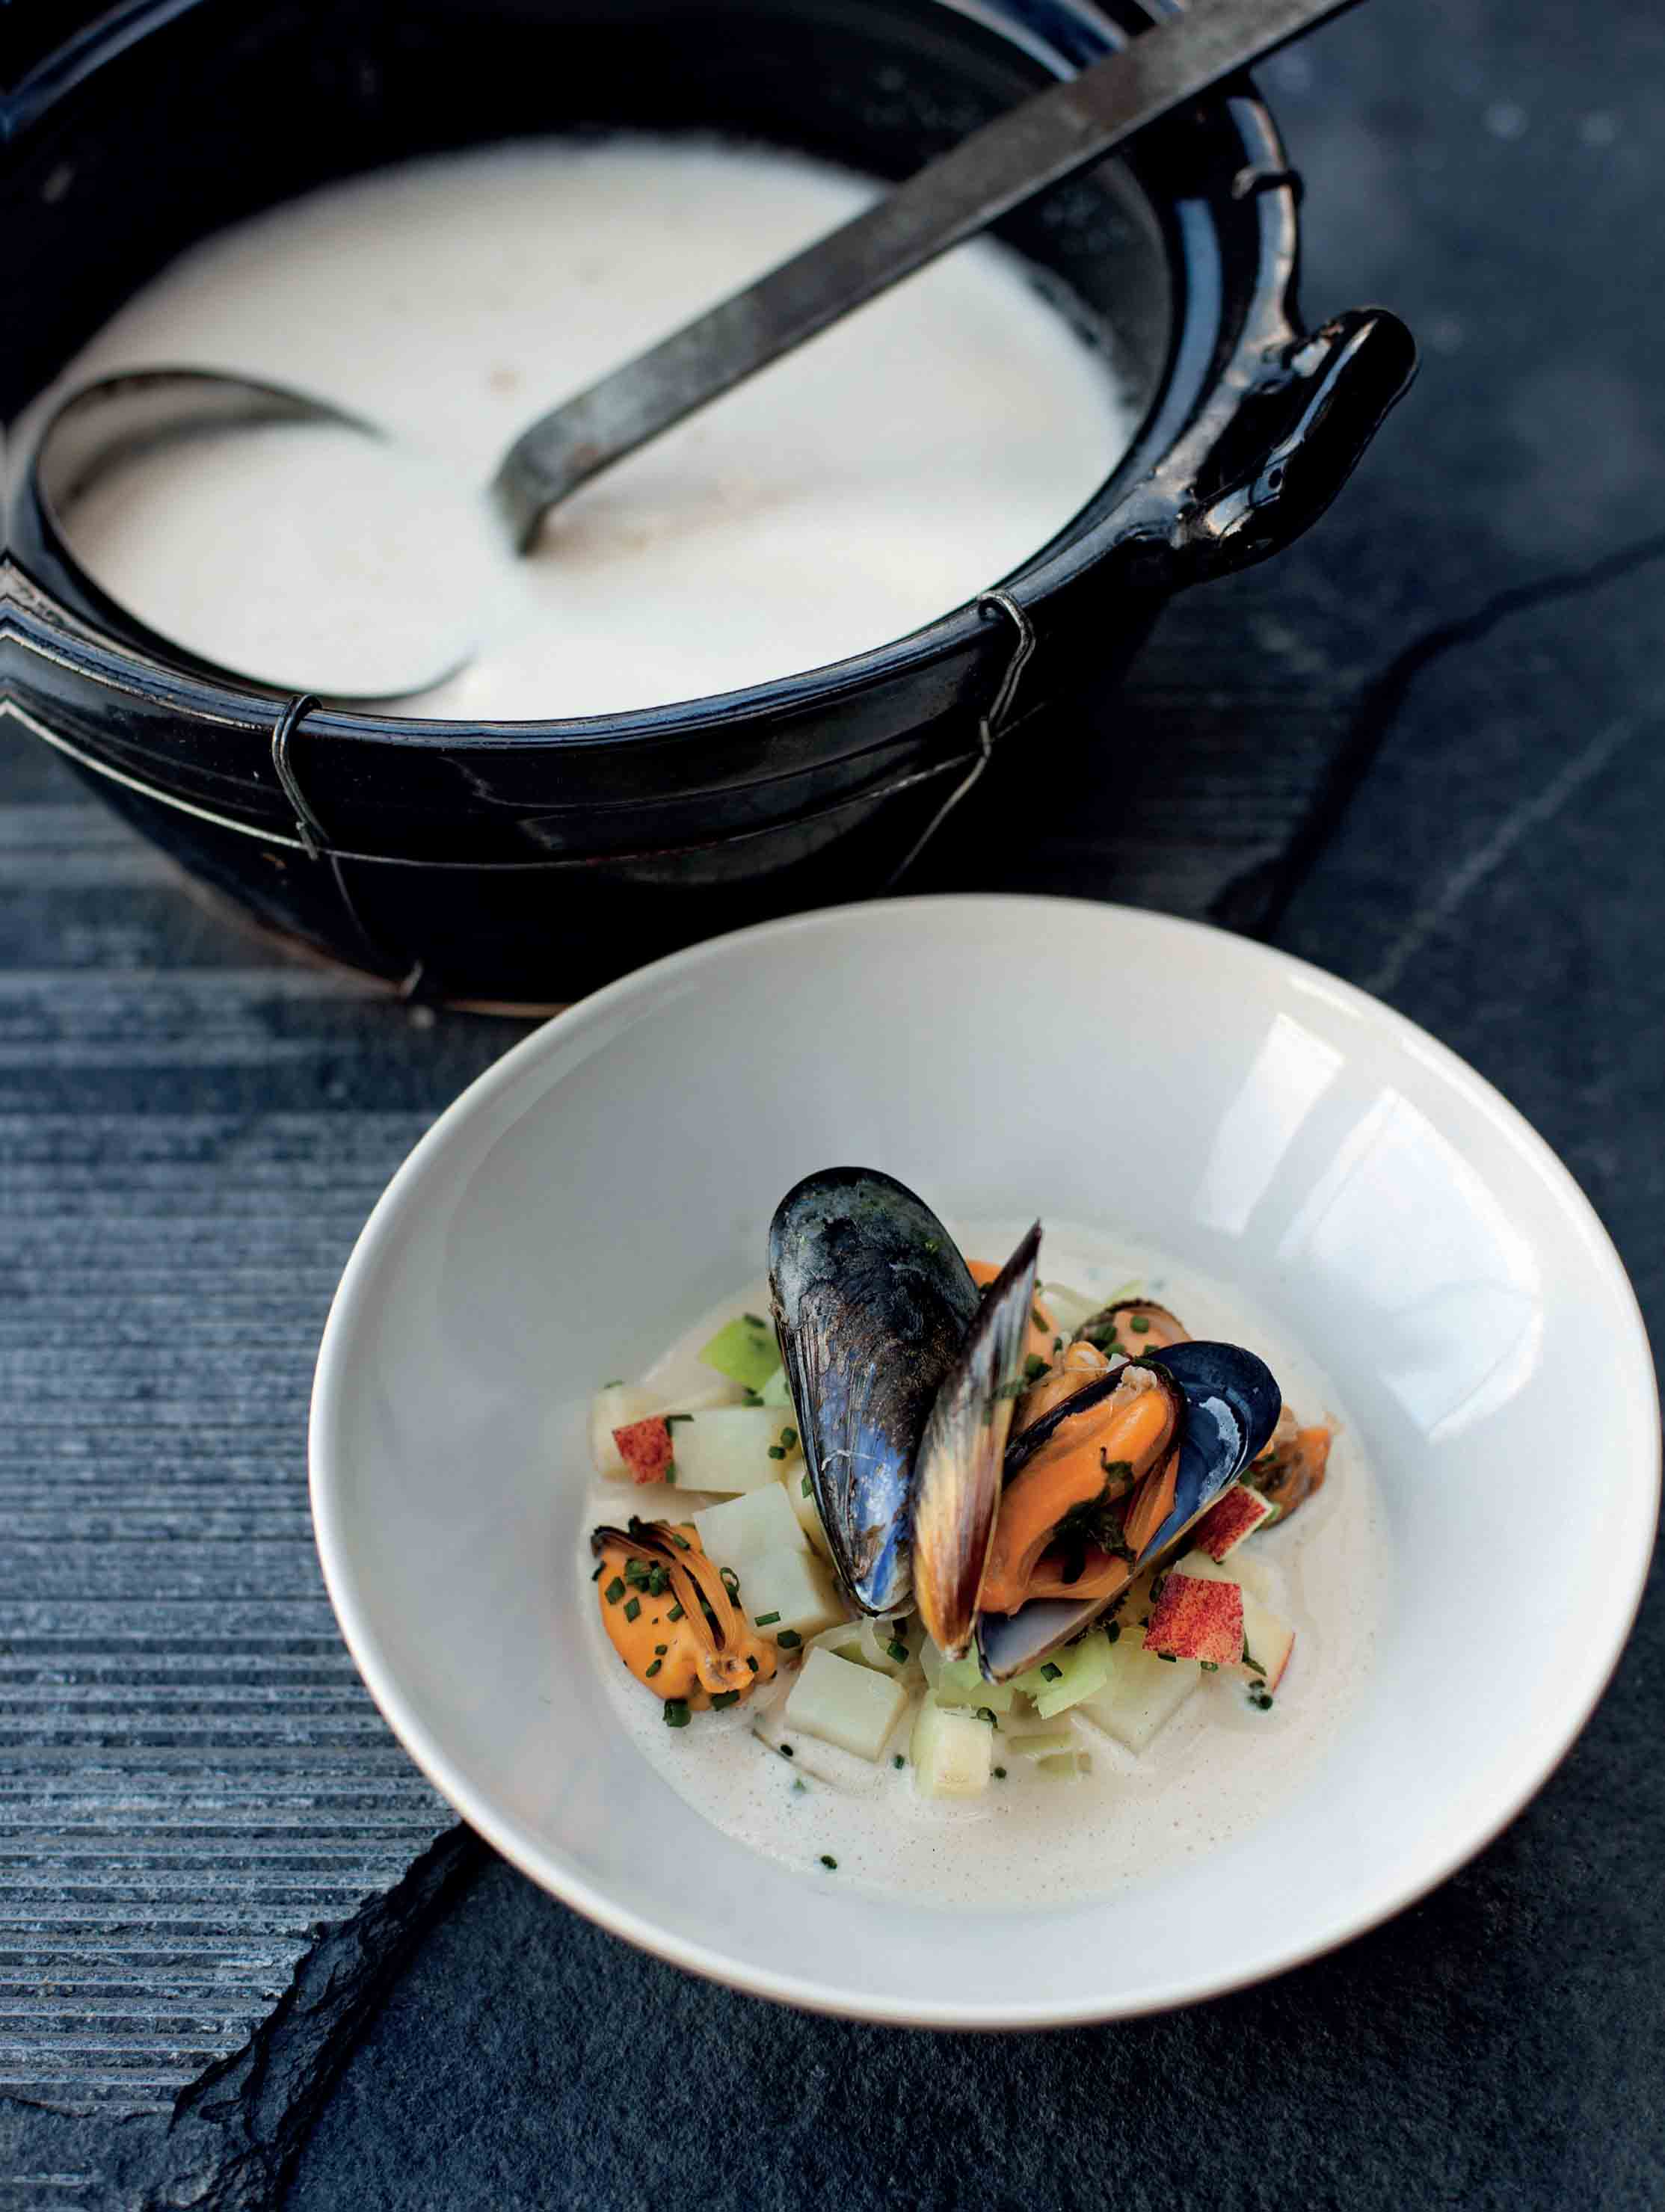 Mussels in a creamy cider broth with leek, potato and apple